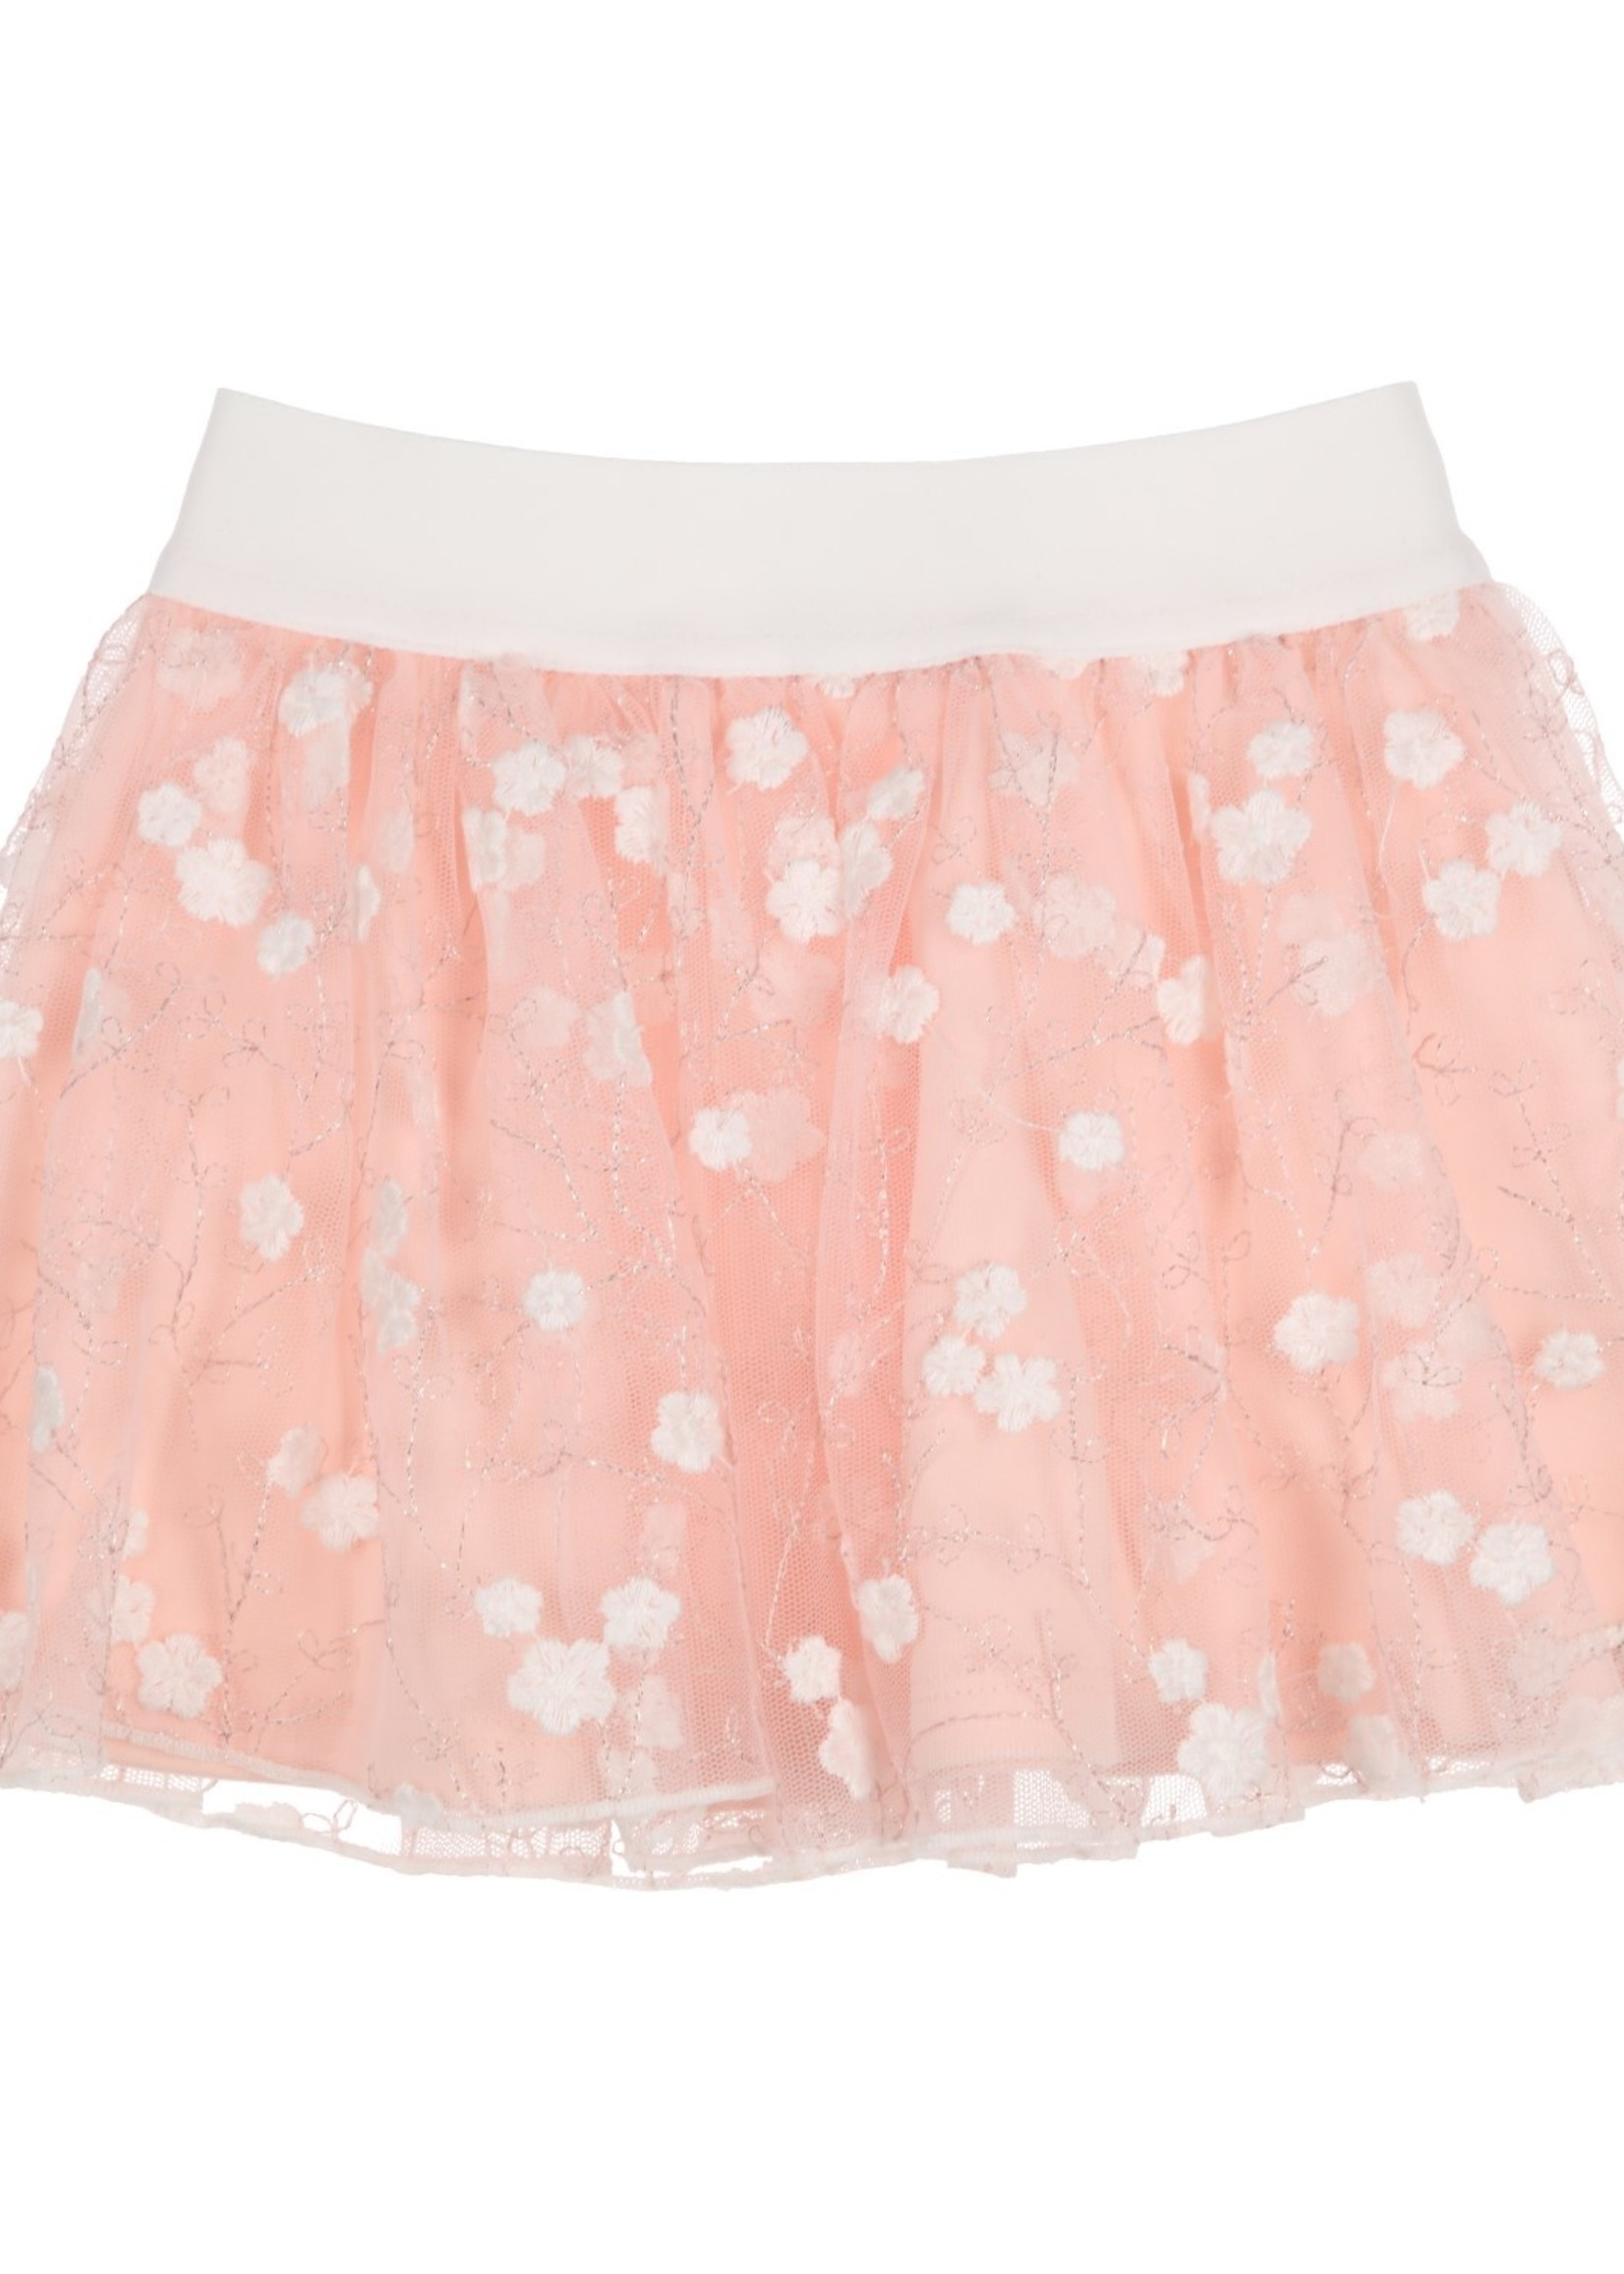 Gymp Gymp skirt tulle vieux rose